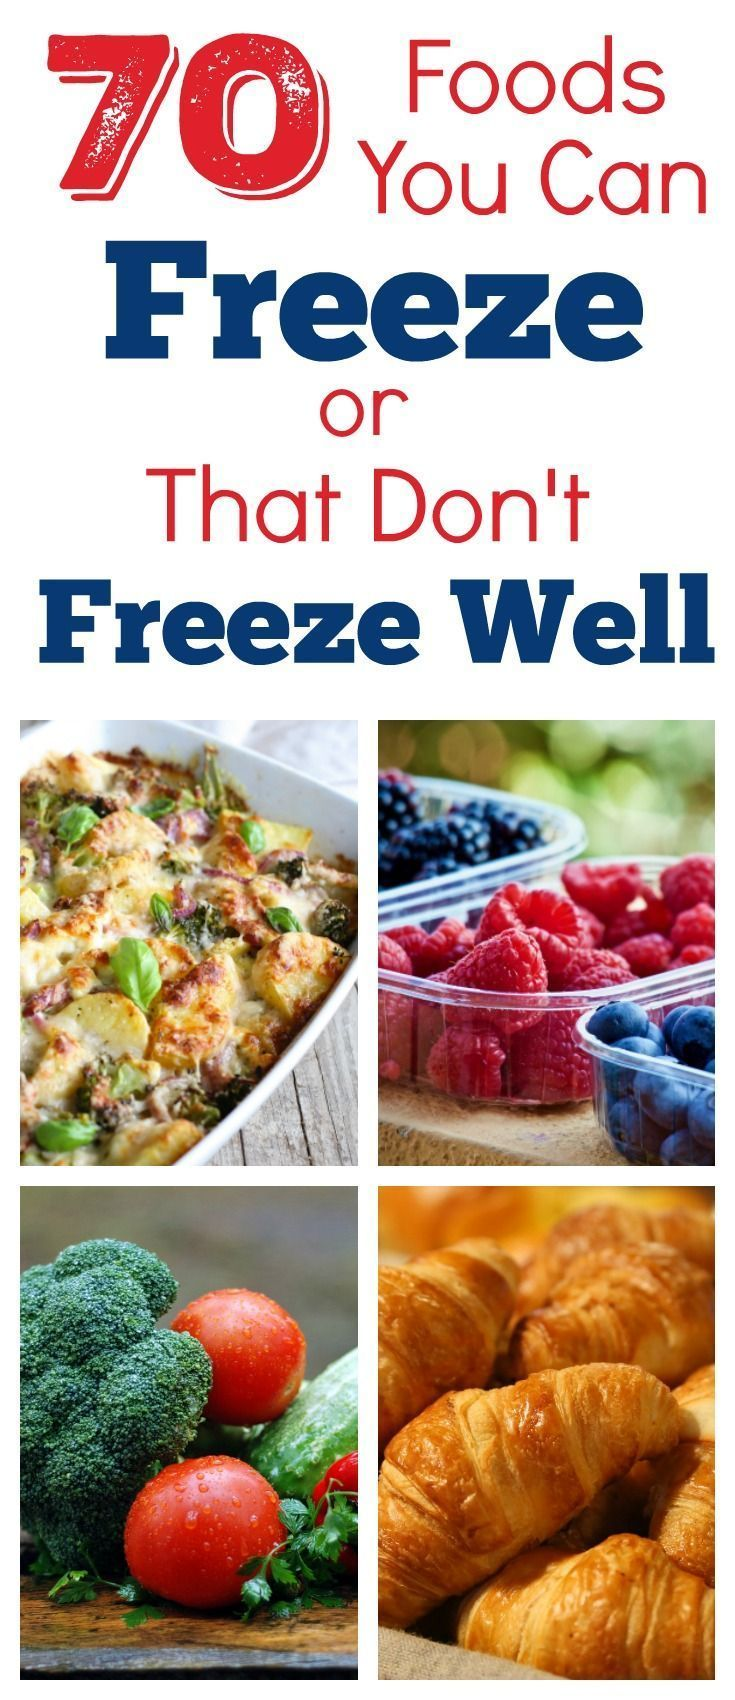 70 foods you can freeze or that dont freeze well best